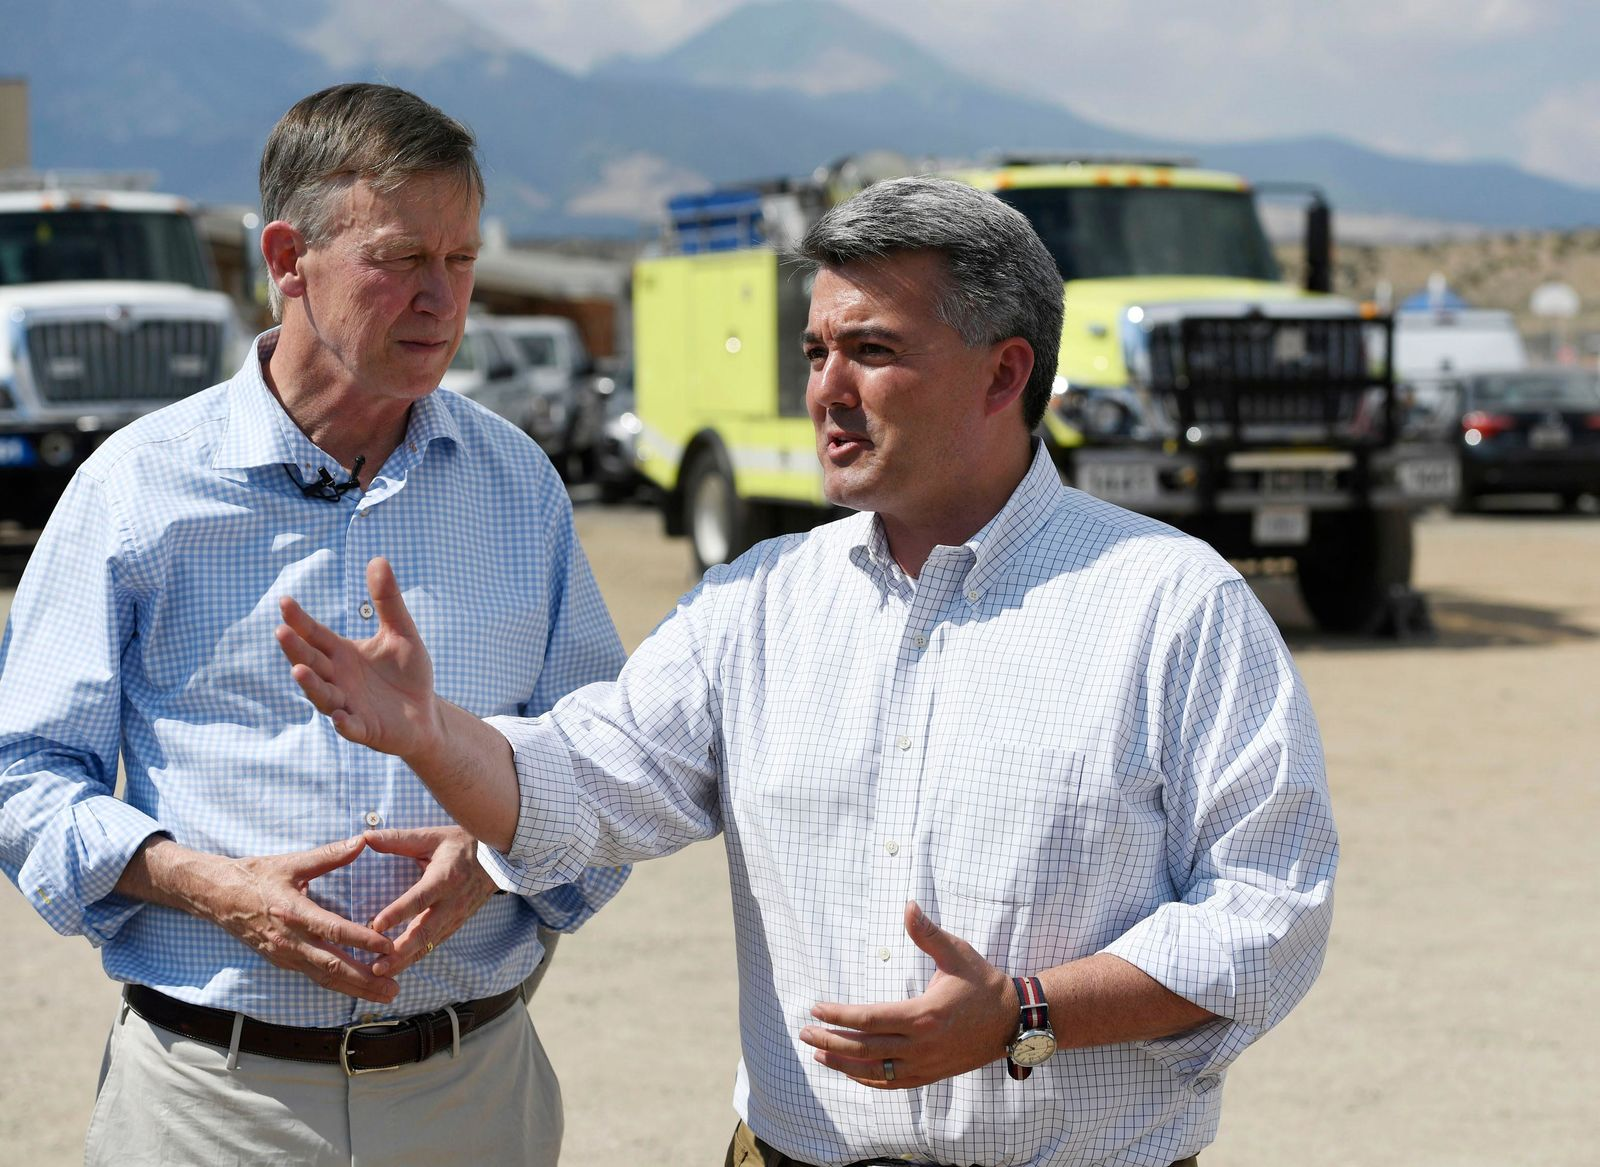 U.S. Sen. Cory Gardner, R-Colo., right, responds to a question as Colorado Gov. John Hickenlooper listens during a press conference about the Spring Creek Fire at the Sierra Grande School grounds Friday, July 6, 2018, in Fort Garland, Colo. (Andy Cross /The Denver Post via AP)